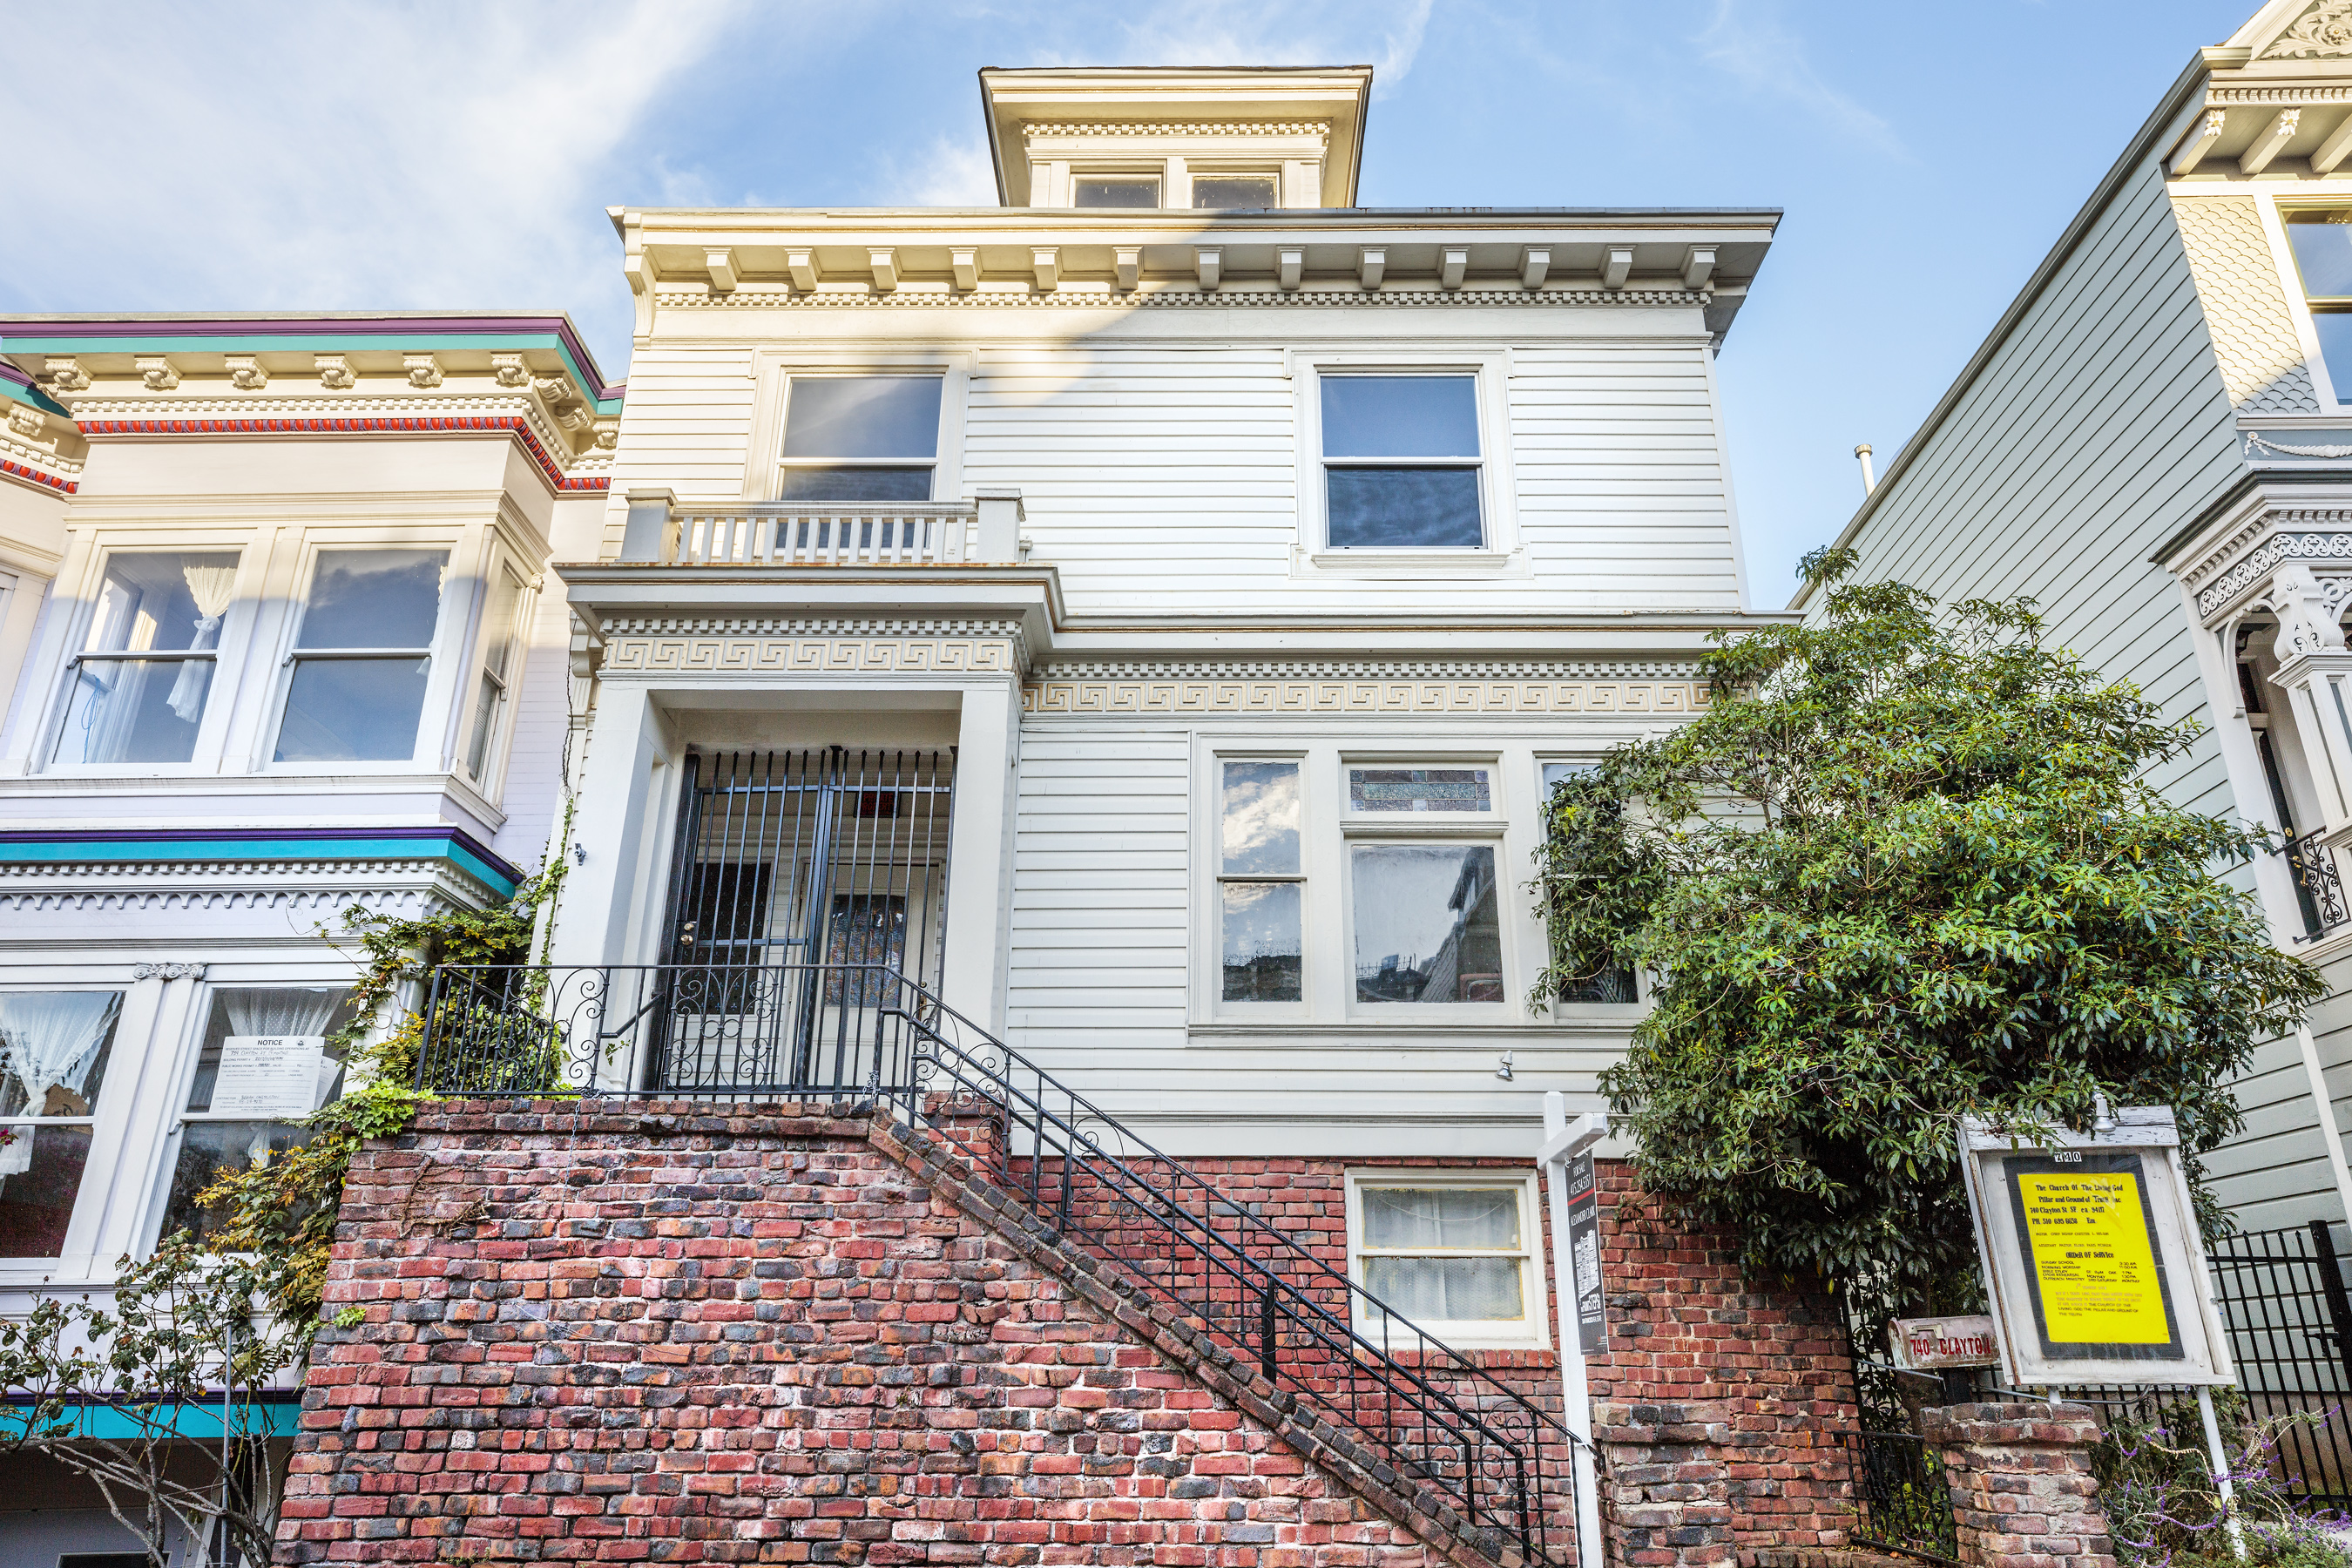 SOLD | 740 Clayton | Haight Ashbury / Cole Valley | $2,600,000